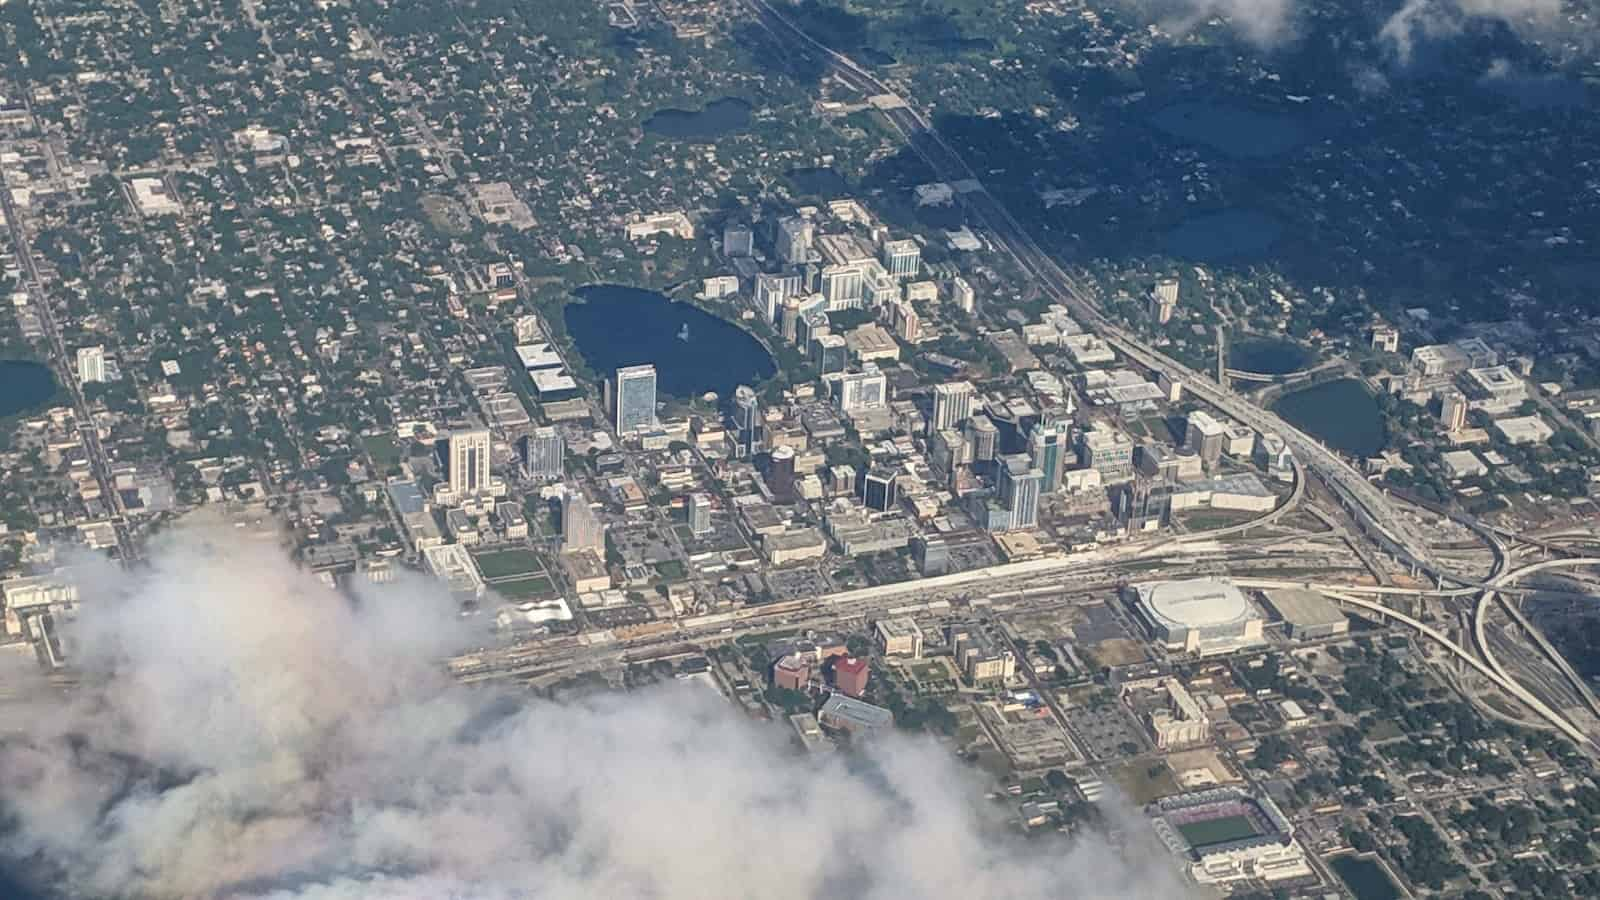 Chicago 2019 - Downtown Orlando from an airplane